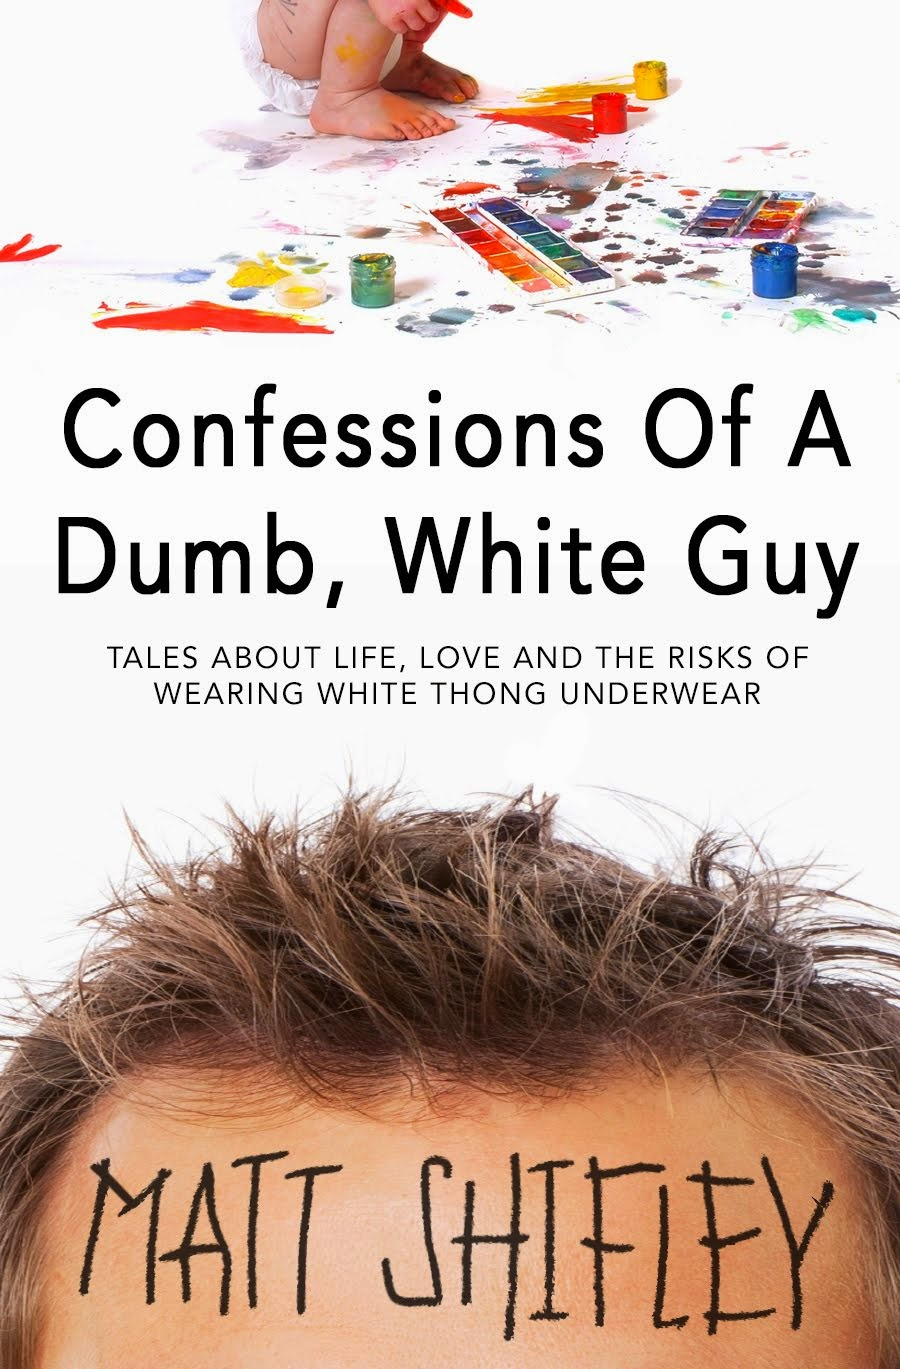 Confessions Of A Dumb, White Guy: The Book